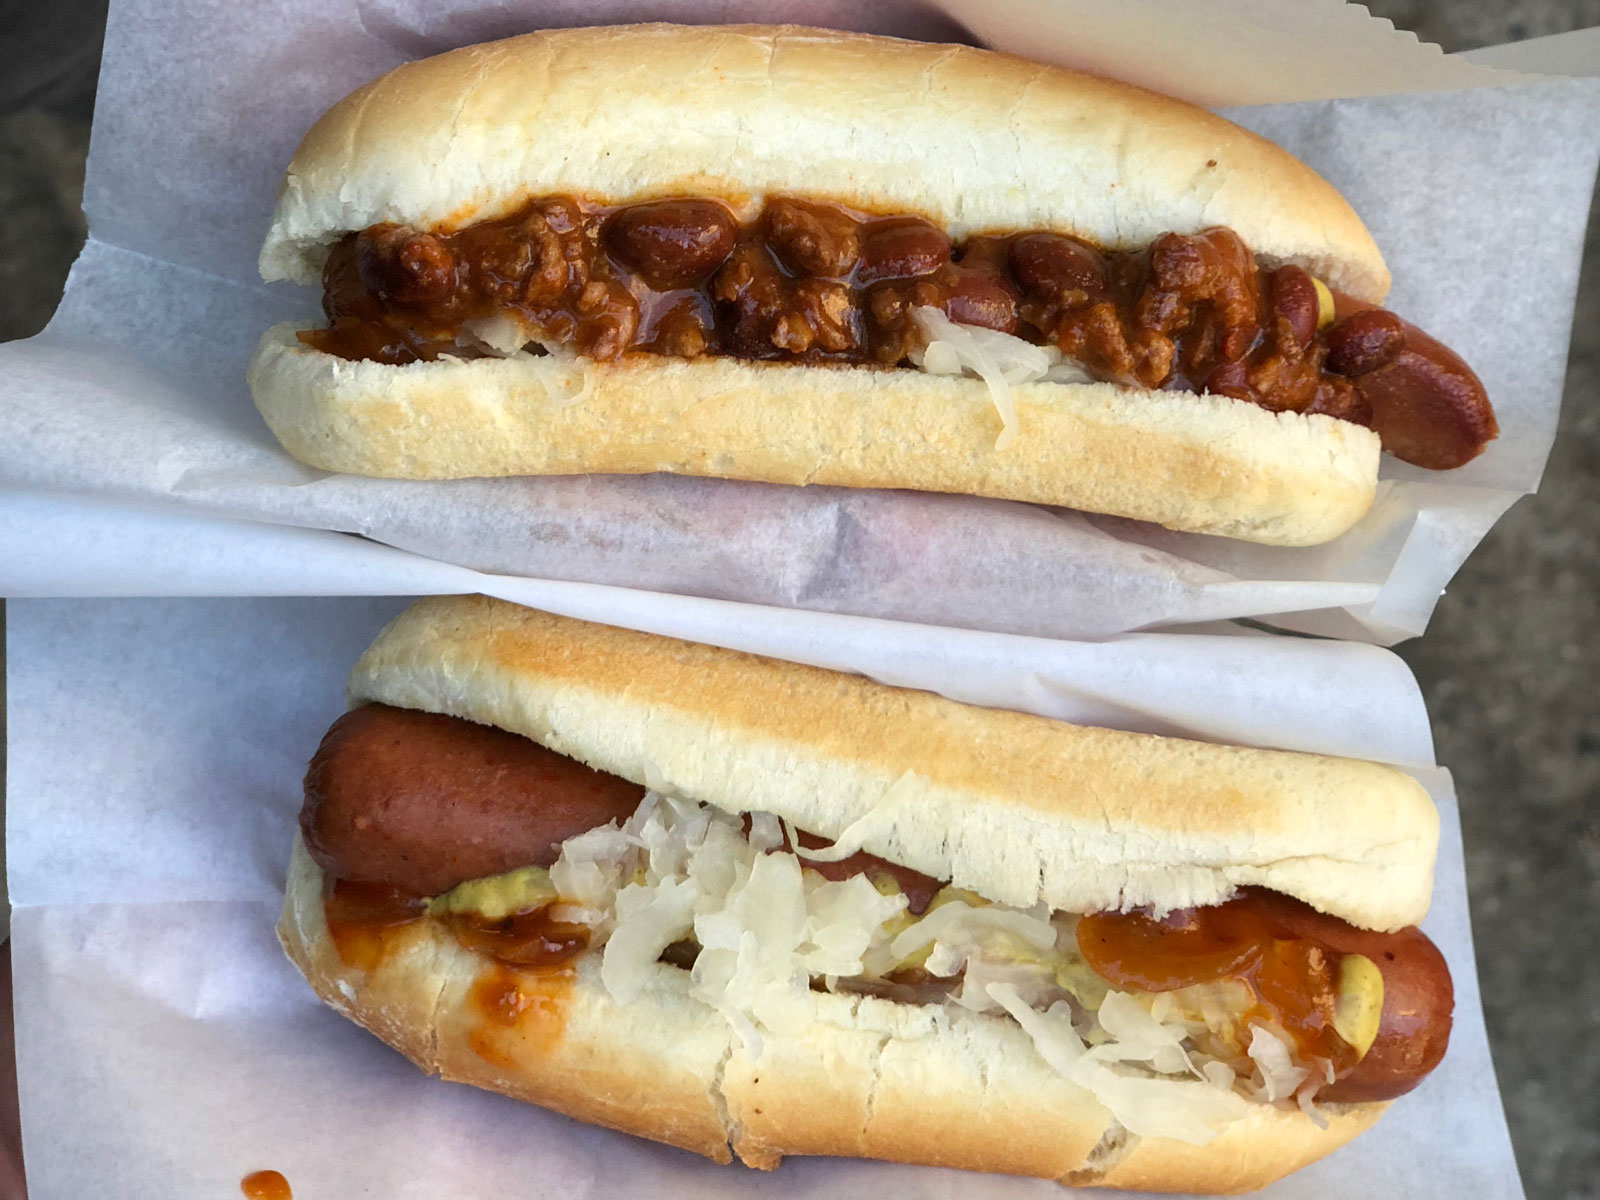 A Brief Ranking of NYC's Least Fancy Hot Dogs